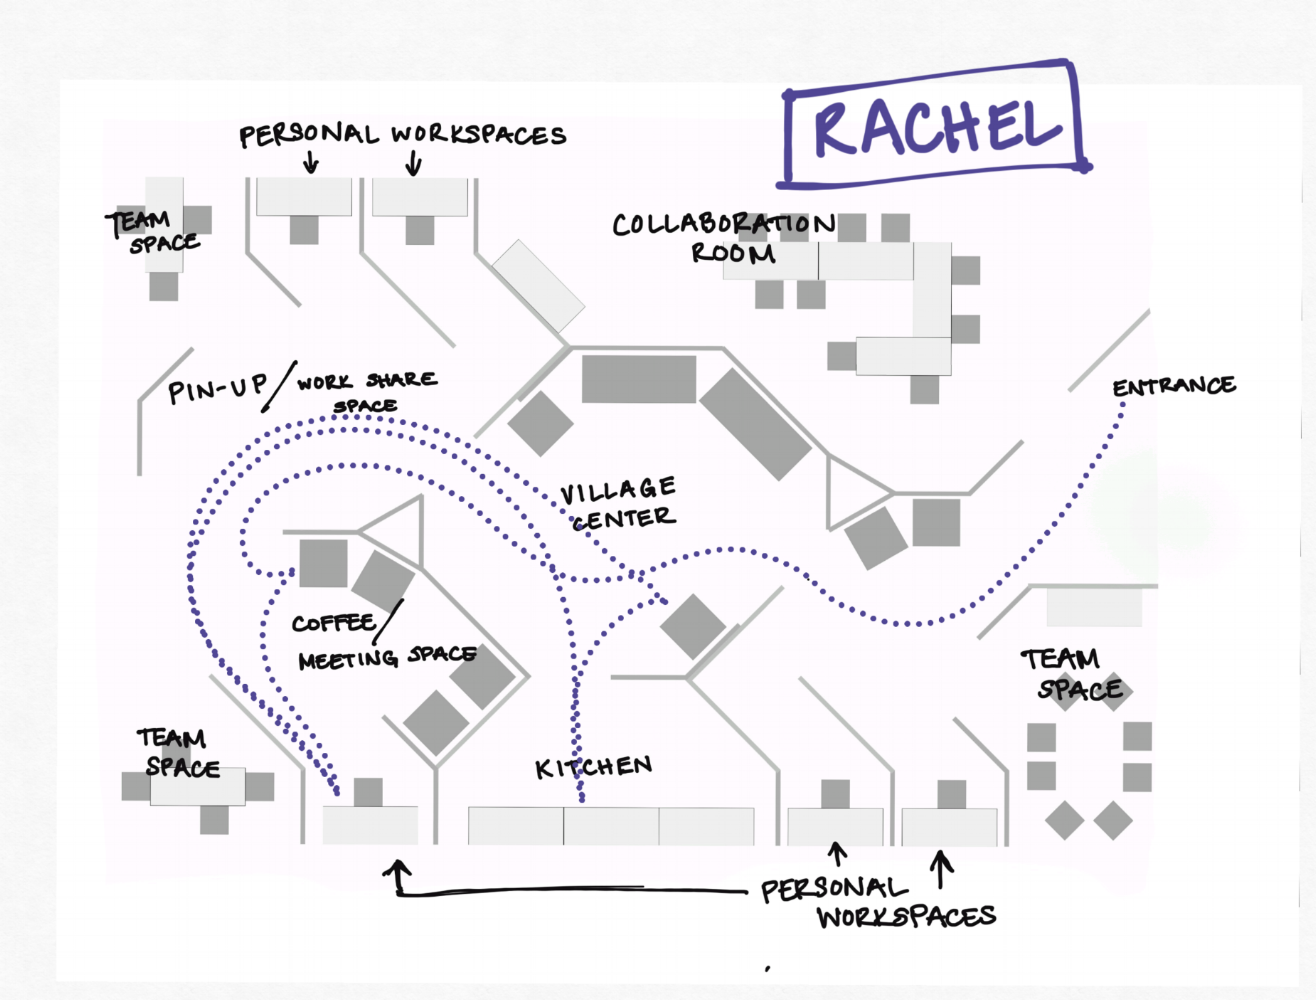 Rachel requires many different types of work areas. She begins her day by having coffee and answering emails, and then moves into an individual workspace to sketch. She likes to go take breaks and interact in the village center before or after she uses the kitchen.